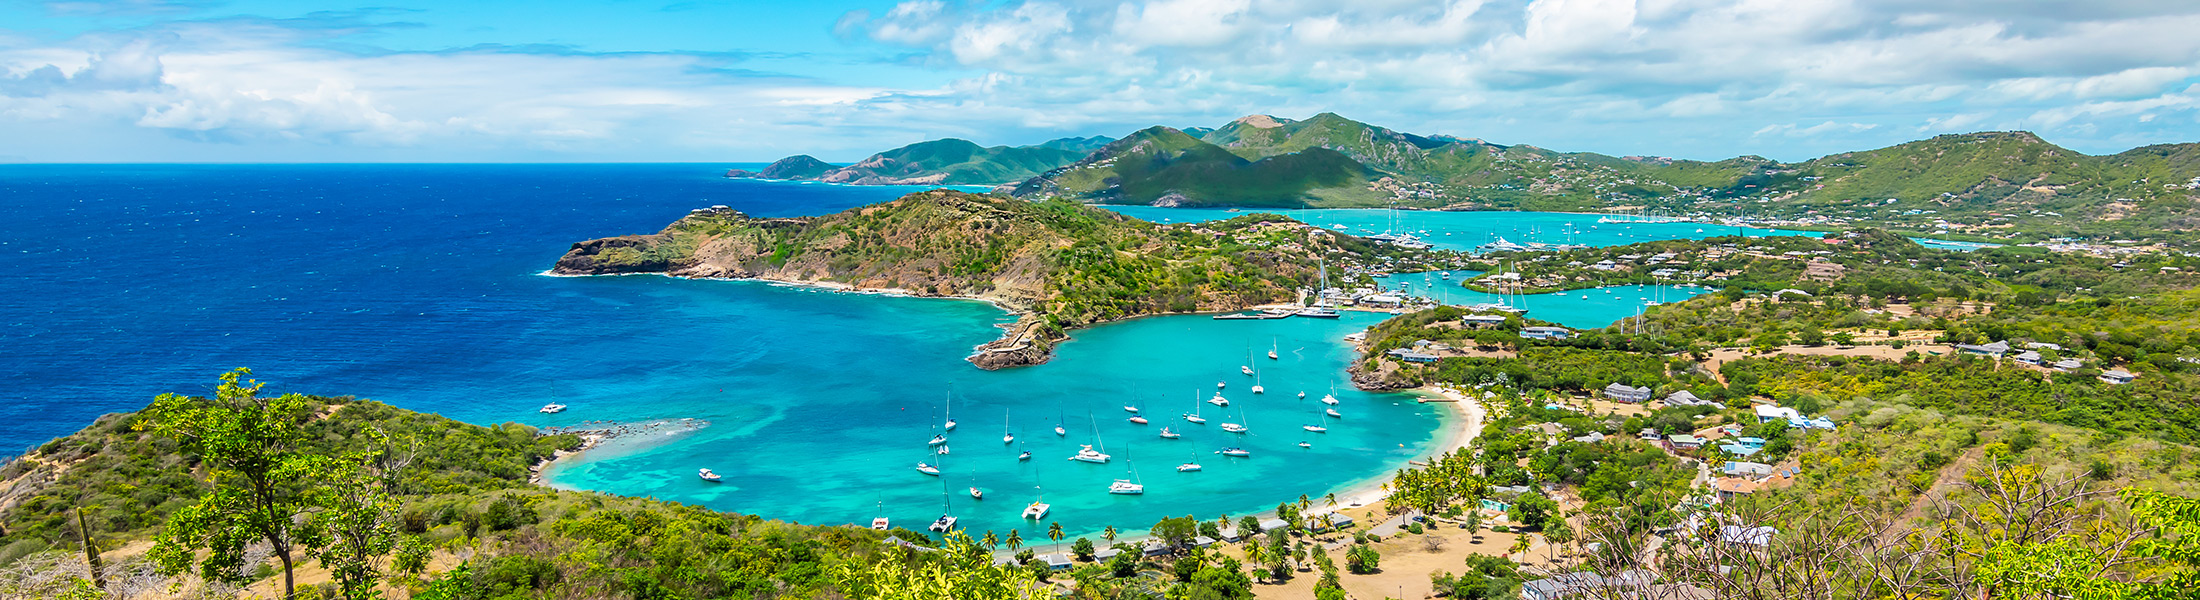 Aerial view of English Harbour in Antigua